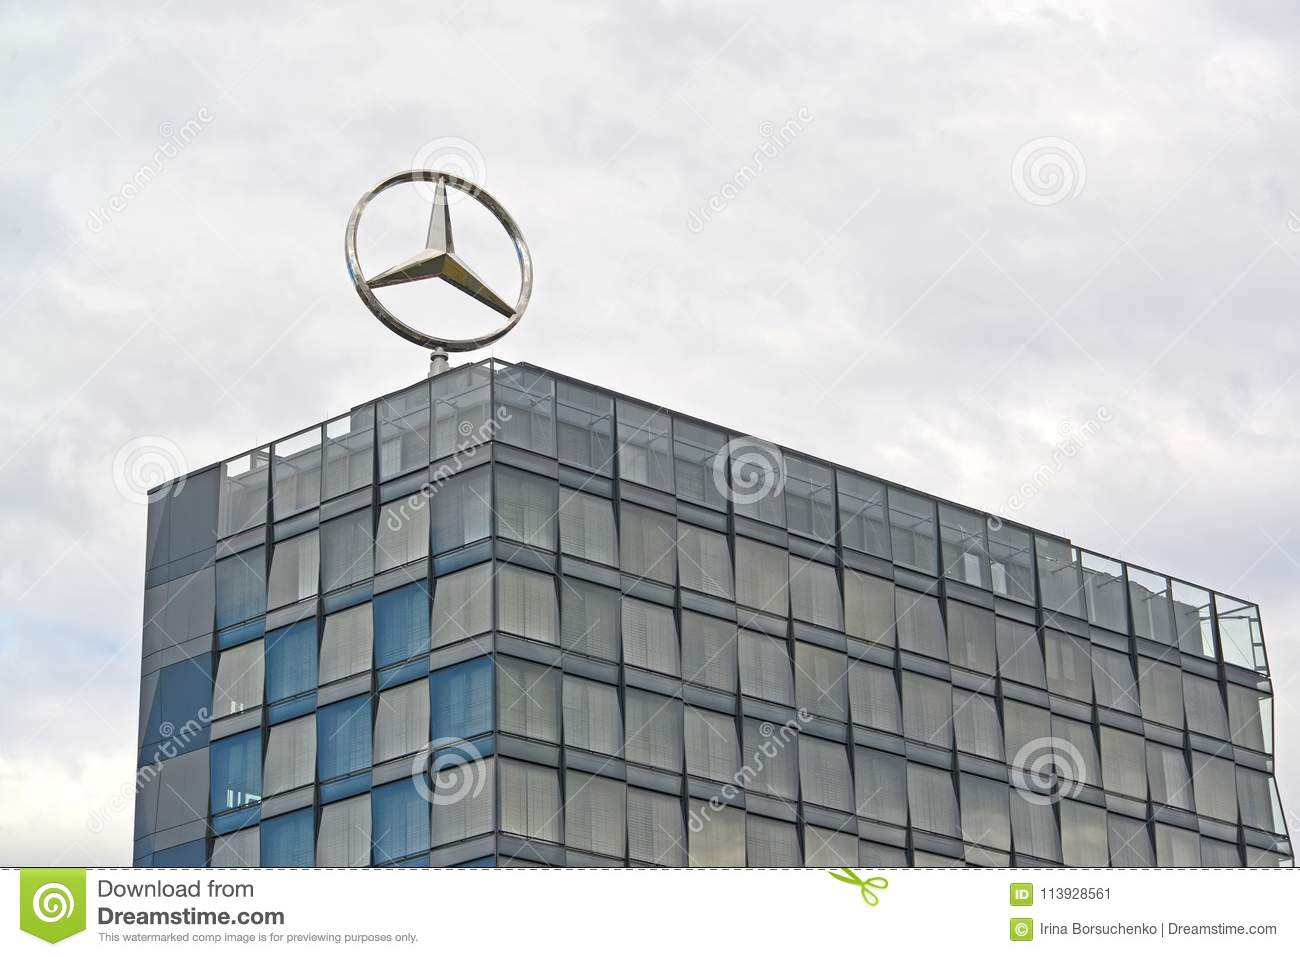 Berlin Germany An Emblem Of The Mercedes Benz Company On A Roof Of The Building Of Europa Center Editorial Photo Image Of Company Building 113928561